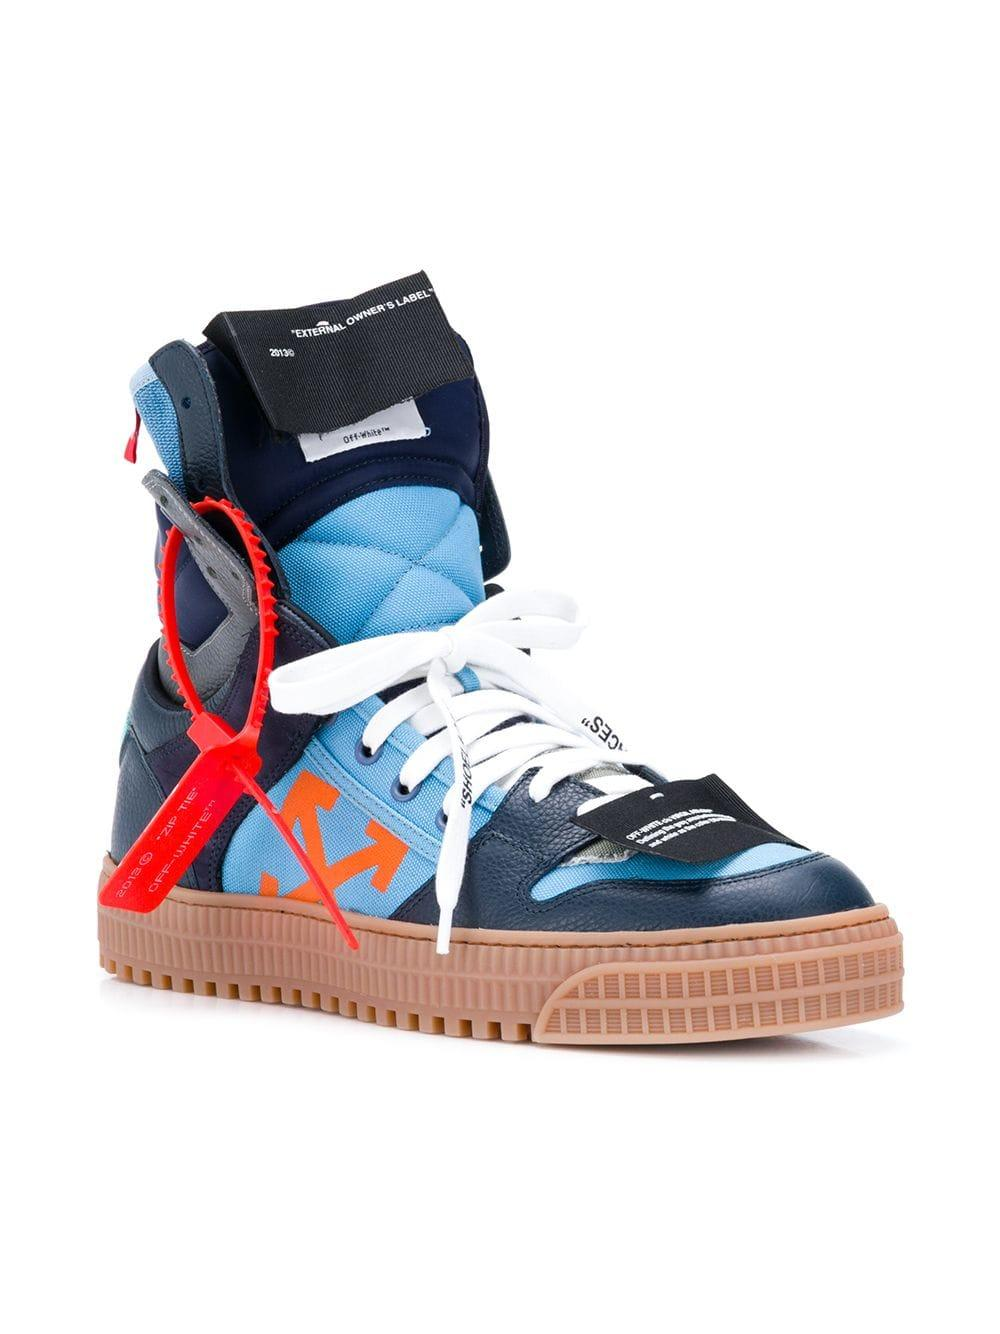 22c2b9eb7e01 Off-White c o Virgil Abloh Men s Off Court Suede leather High-top Sneakers  in Blue for Men - Save 22.077922077922082% - Lyst